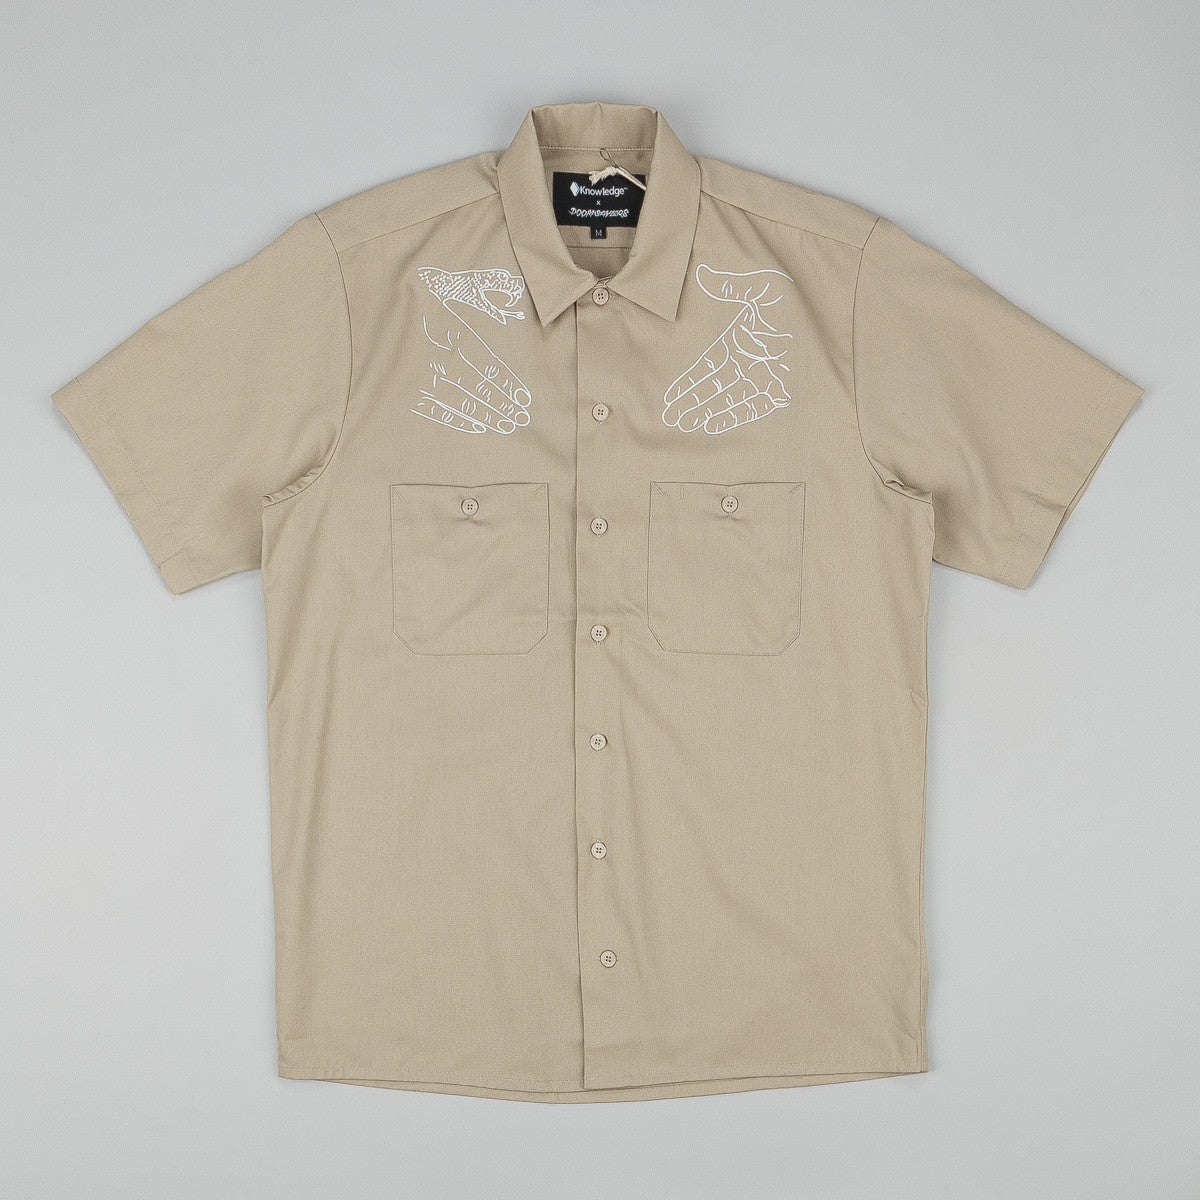 Doom Sayers X Know1edge Snake Shake Button Up S/S Shirt - Tan